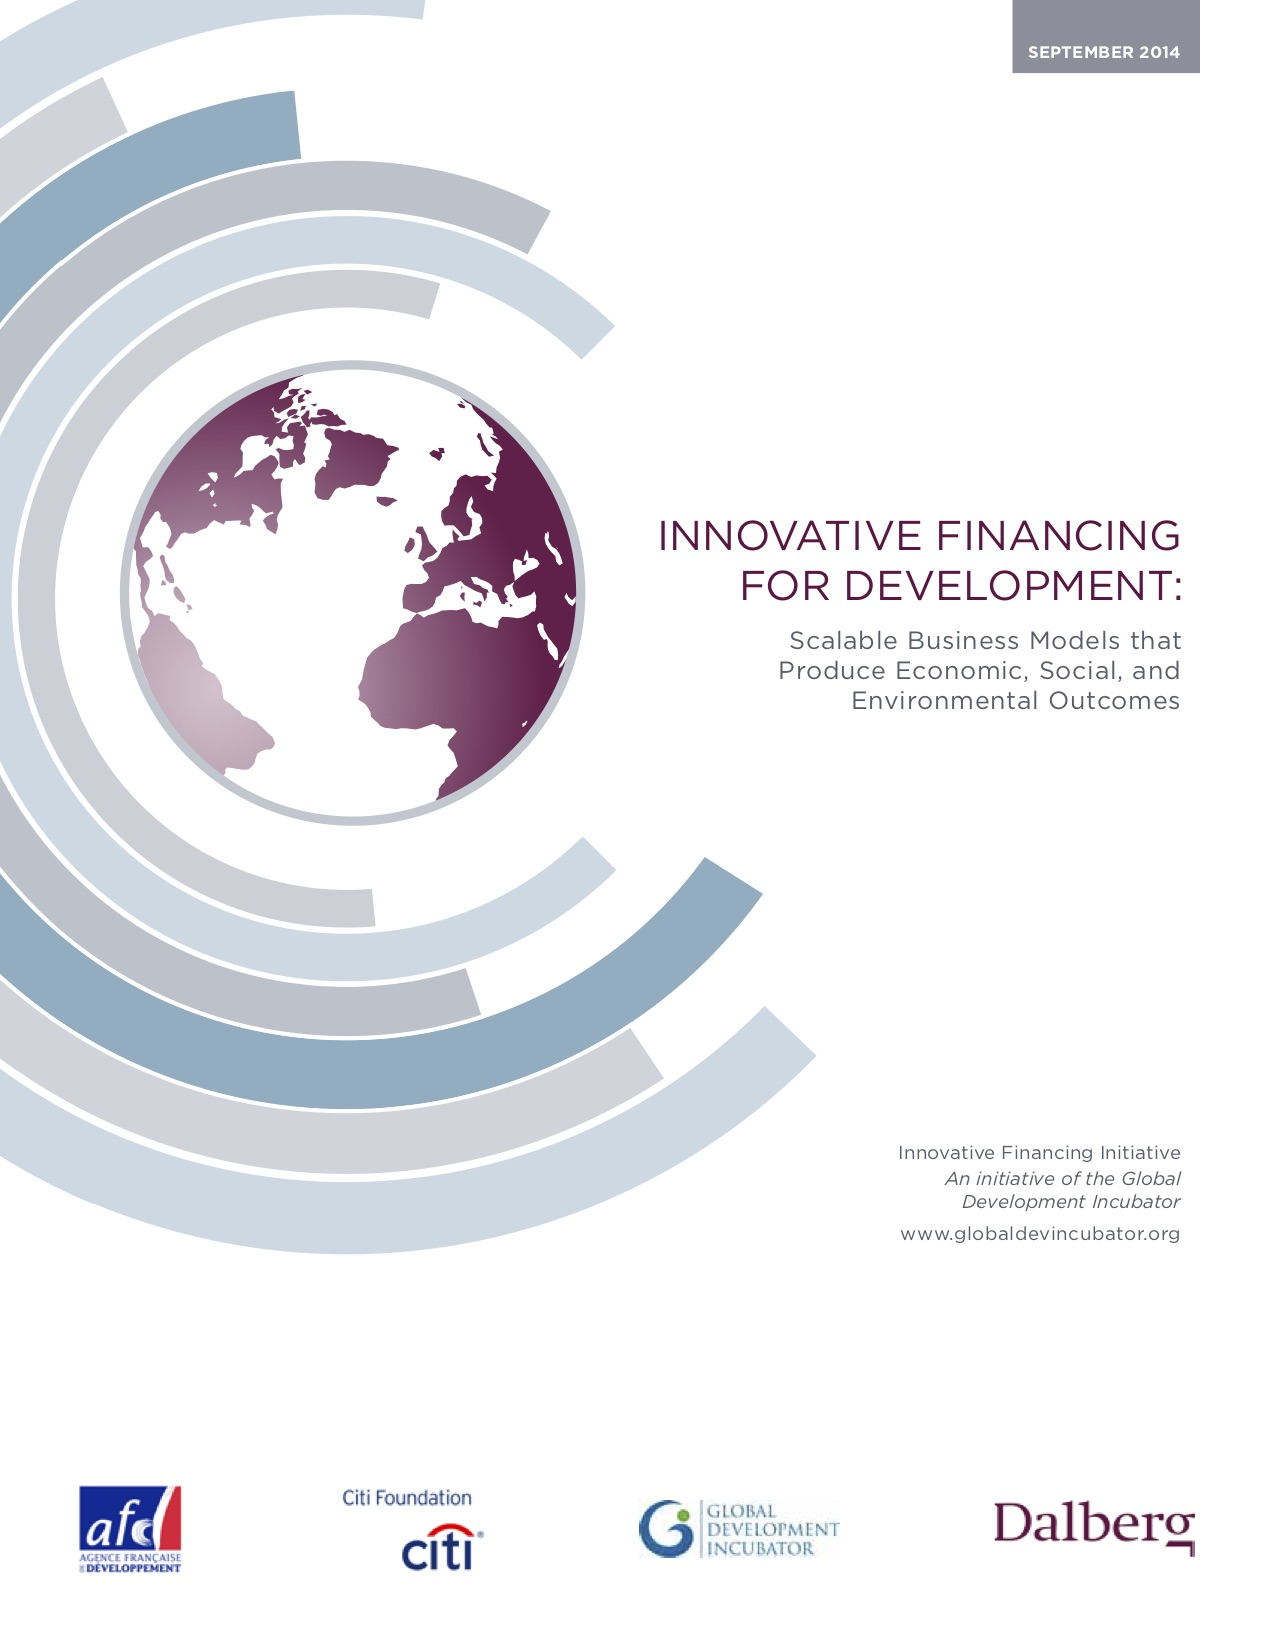 Innovative Financing for Development: Scalable Business Models that Produce Economic, Social, and Environmental Outcomes